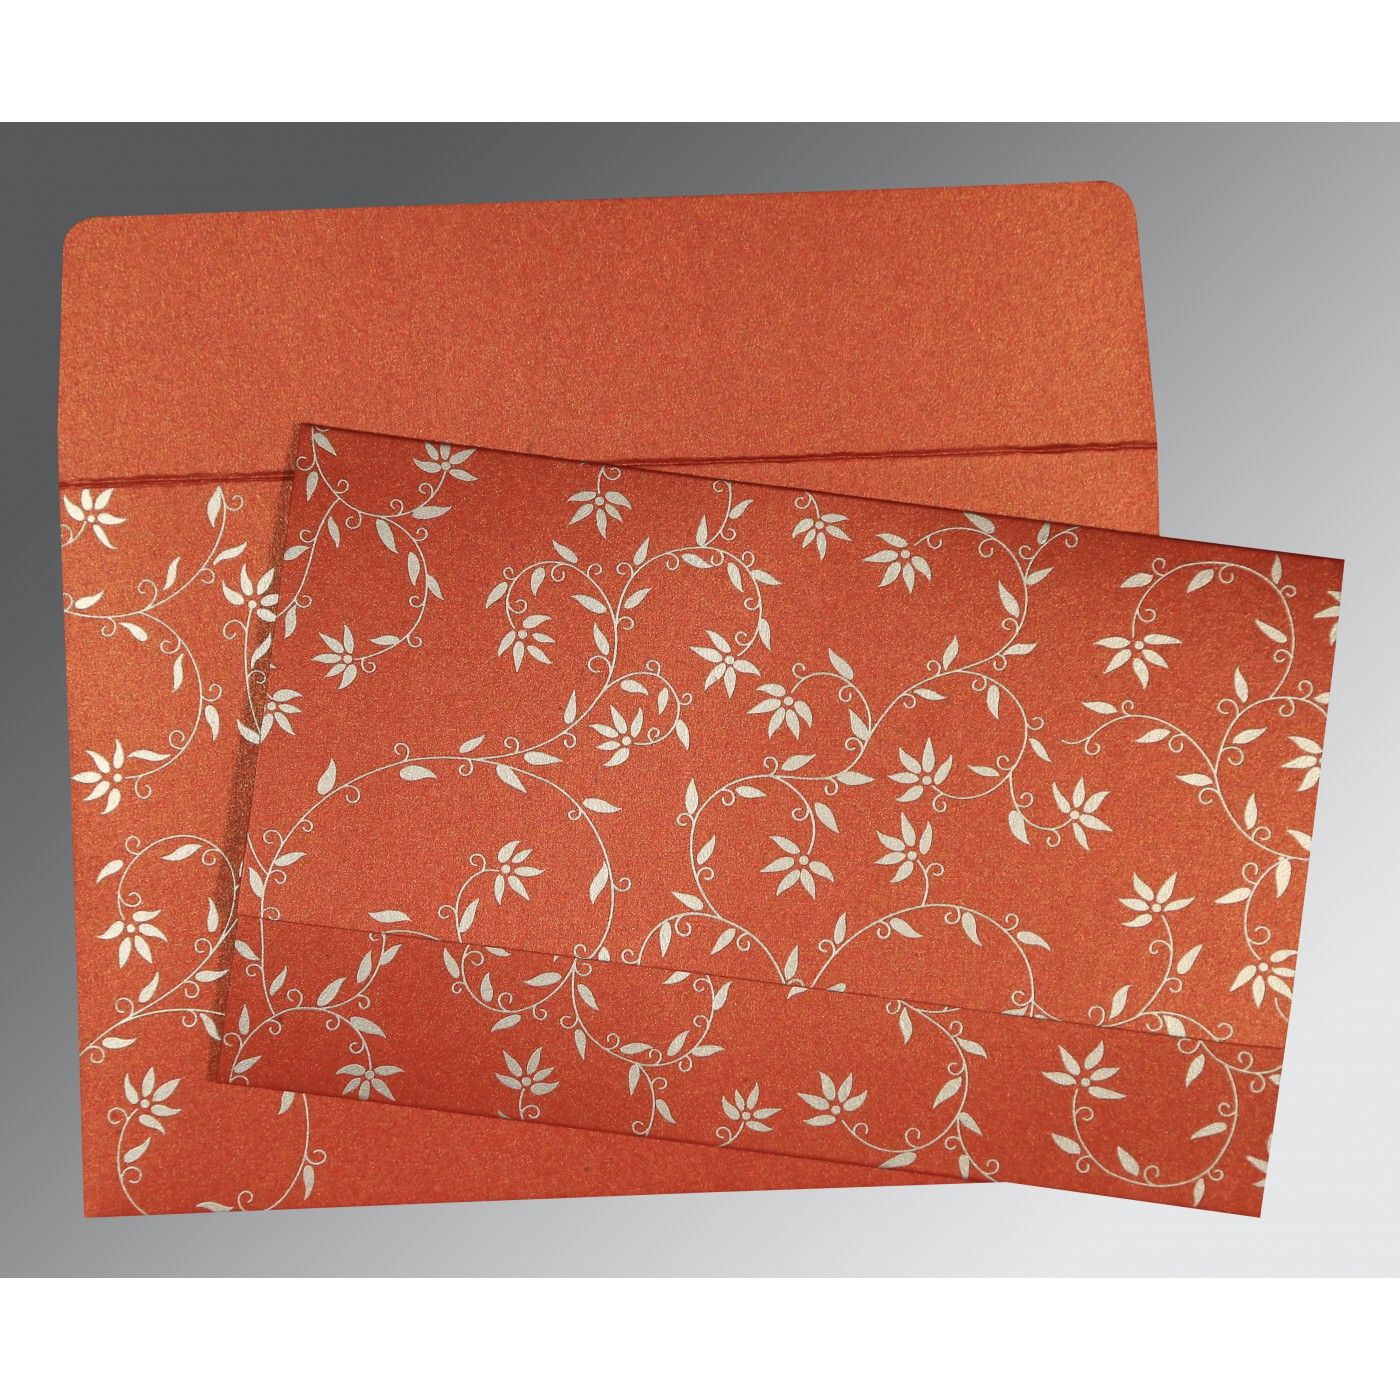 BRICK RED SHIMMERY FLORAL THEMED - SCREEN PRINTED WEDDING INVITATION : CW-8226I - IndianWeddingCards